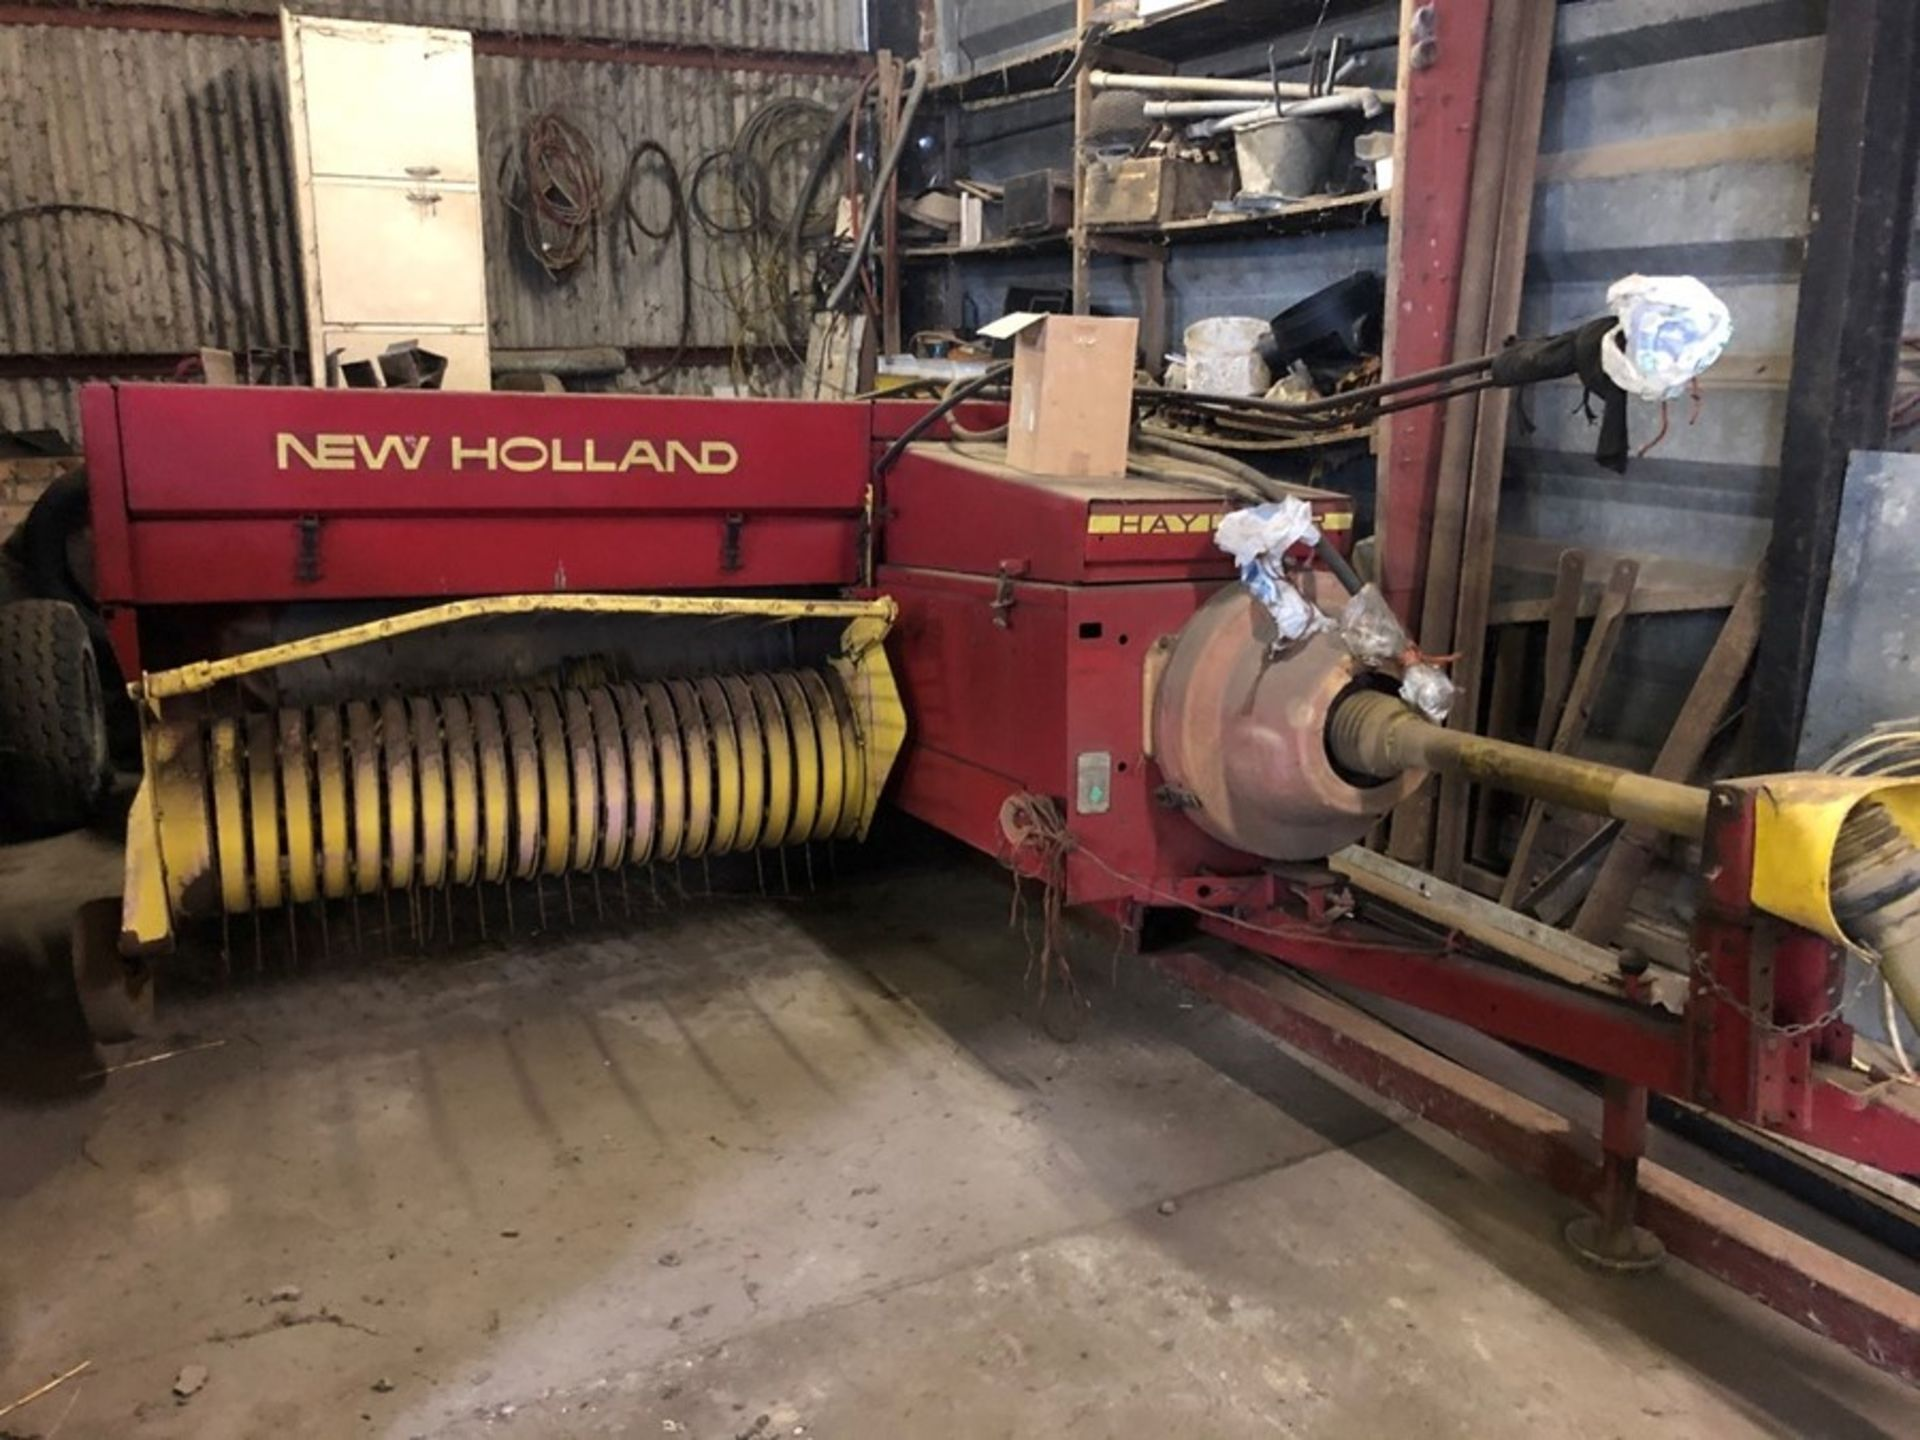 New Holland 376 Hayliner conventional baler, 5ft intake, serial no: 8376W10087, manual in office